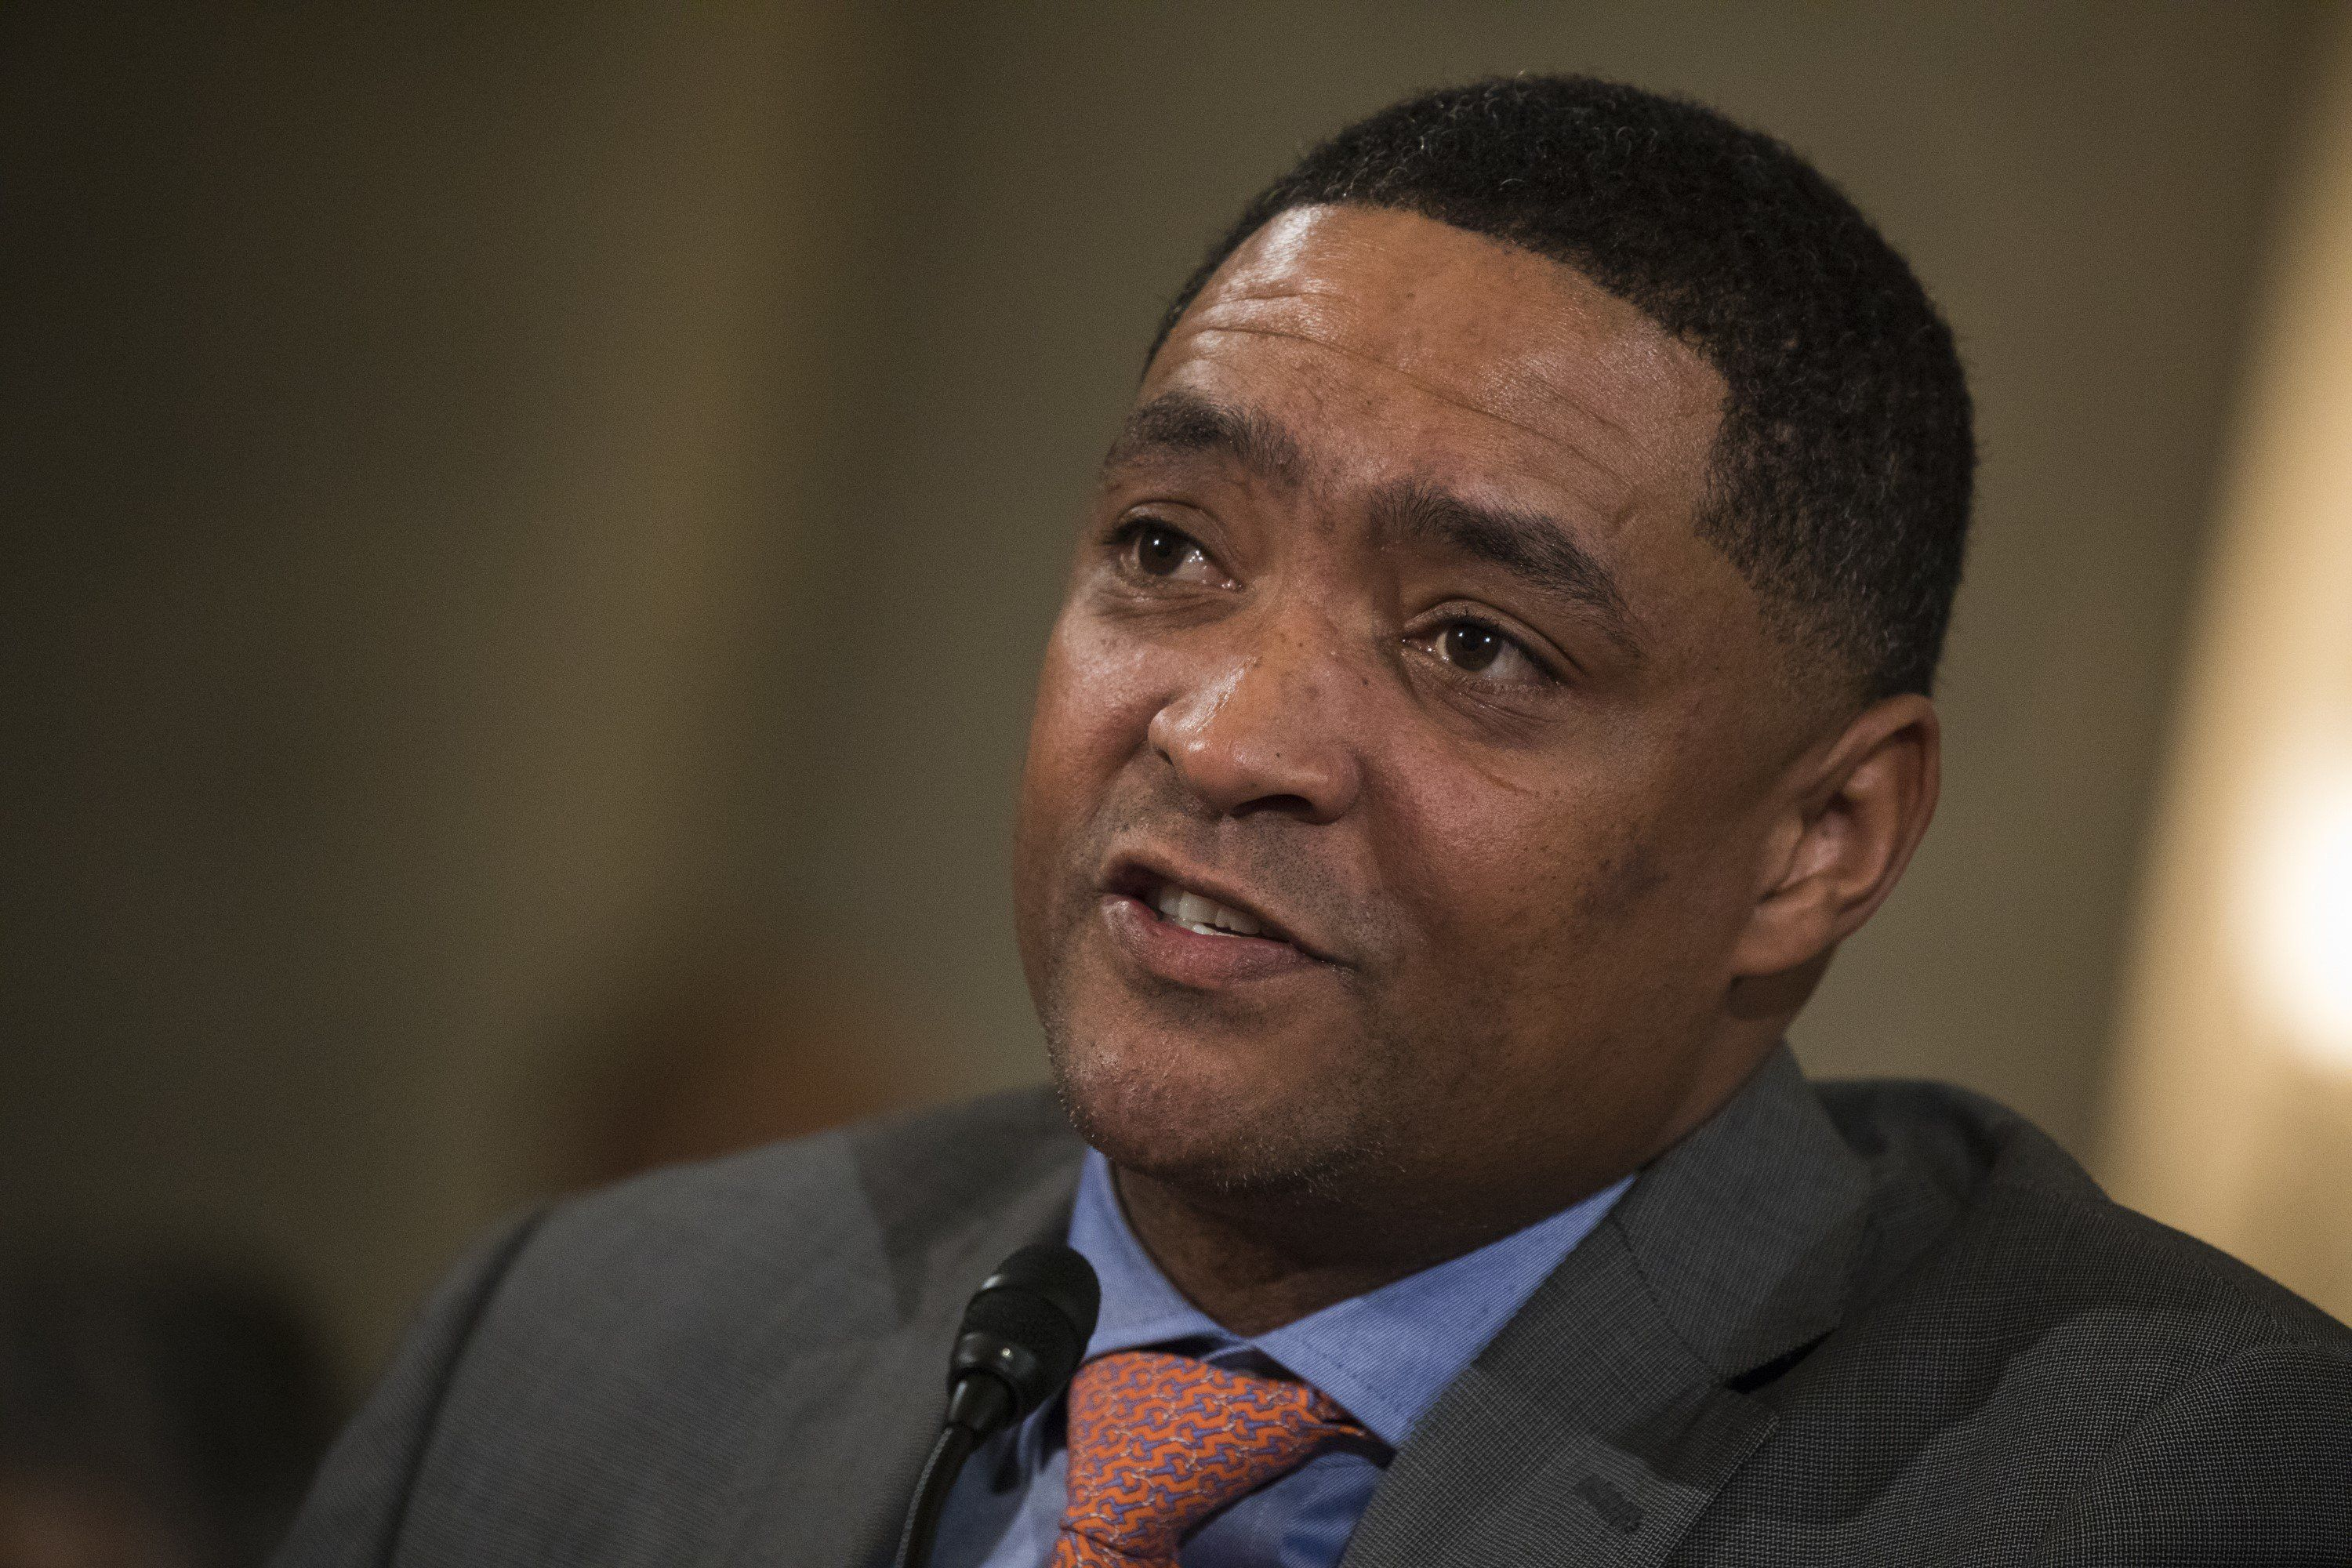 WASHINGTON, USA - January 11: Representative Cedric Richmond testifies against President-elect Trumps nomination of Senator Jeff Sessions to be Attorney General during the Senate Judiciary Committee confirmation hearing at the U.S. Capitol in Washington, USA on January 11, 2017. (Photo by Samuel Corum/Anadolu Agency/Getty Images)